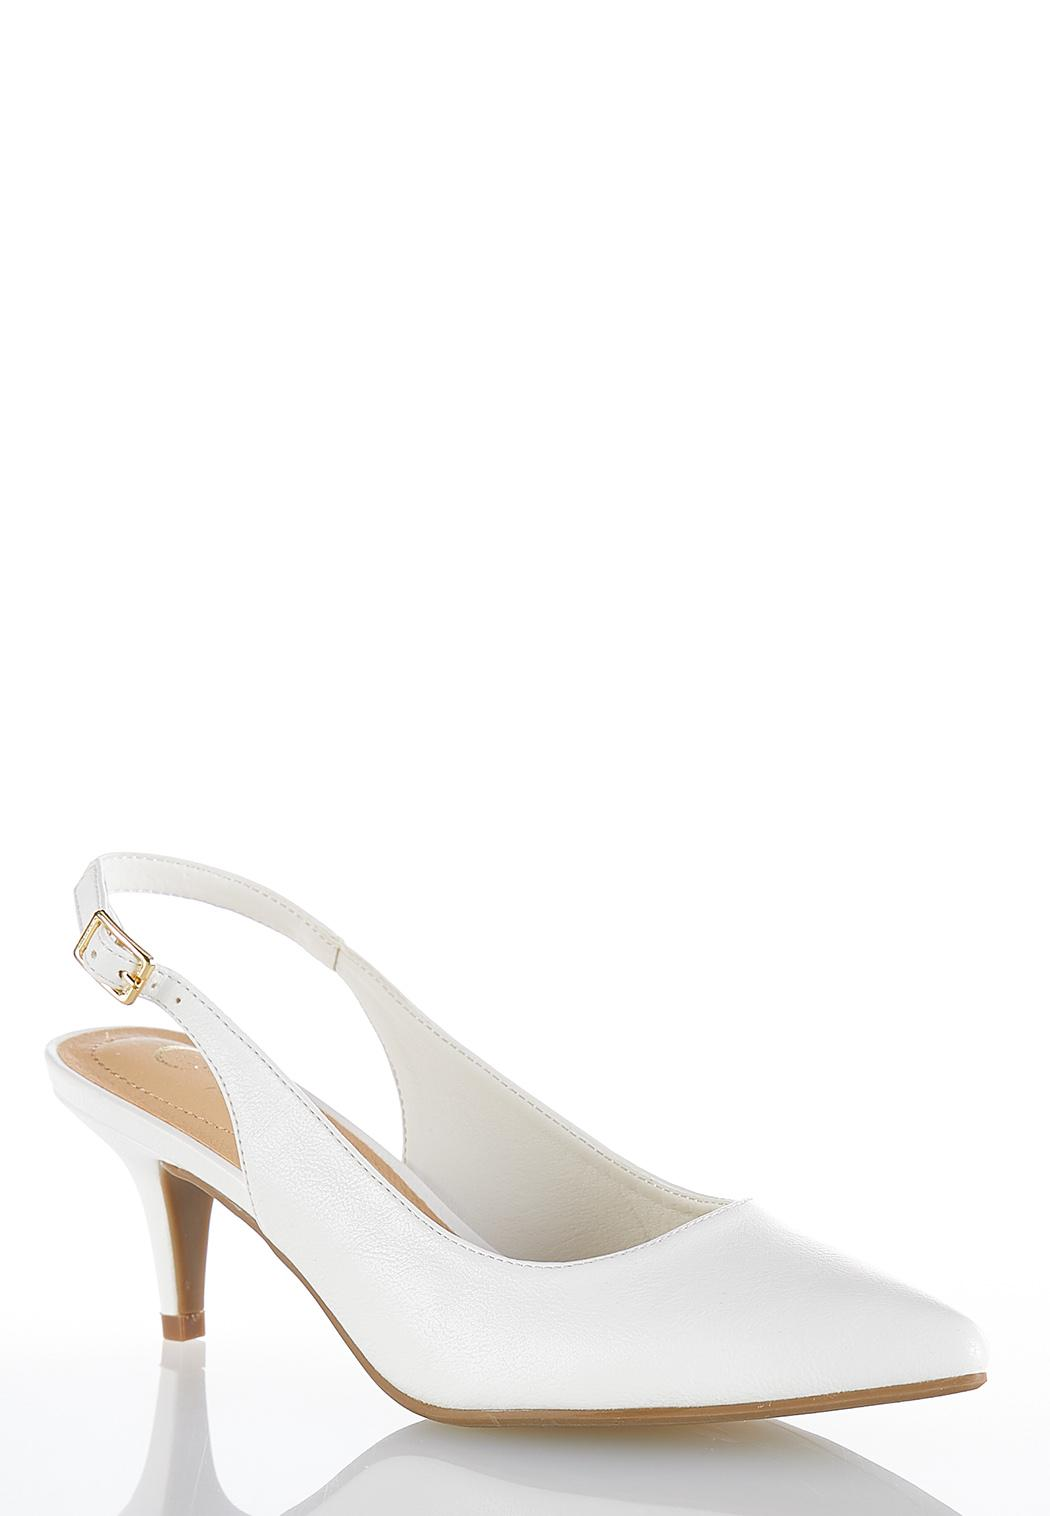 60410d98074 Wide Width Slingback White Pumps Heels Cato Fashions